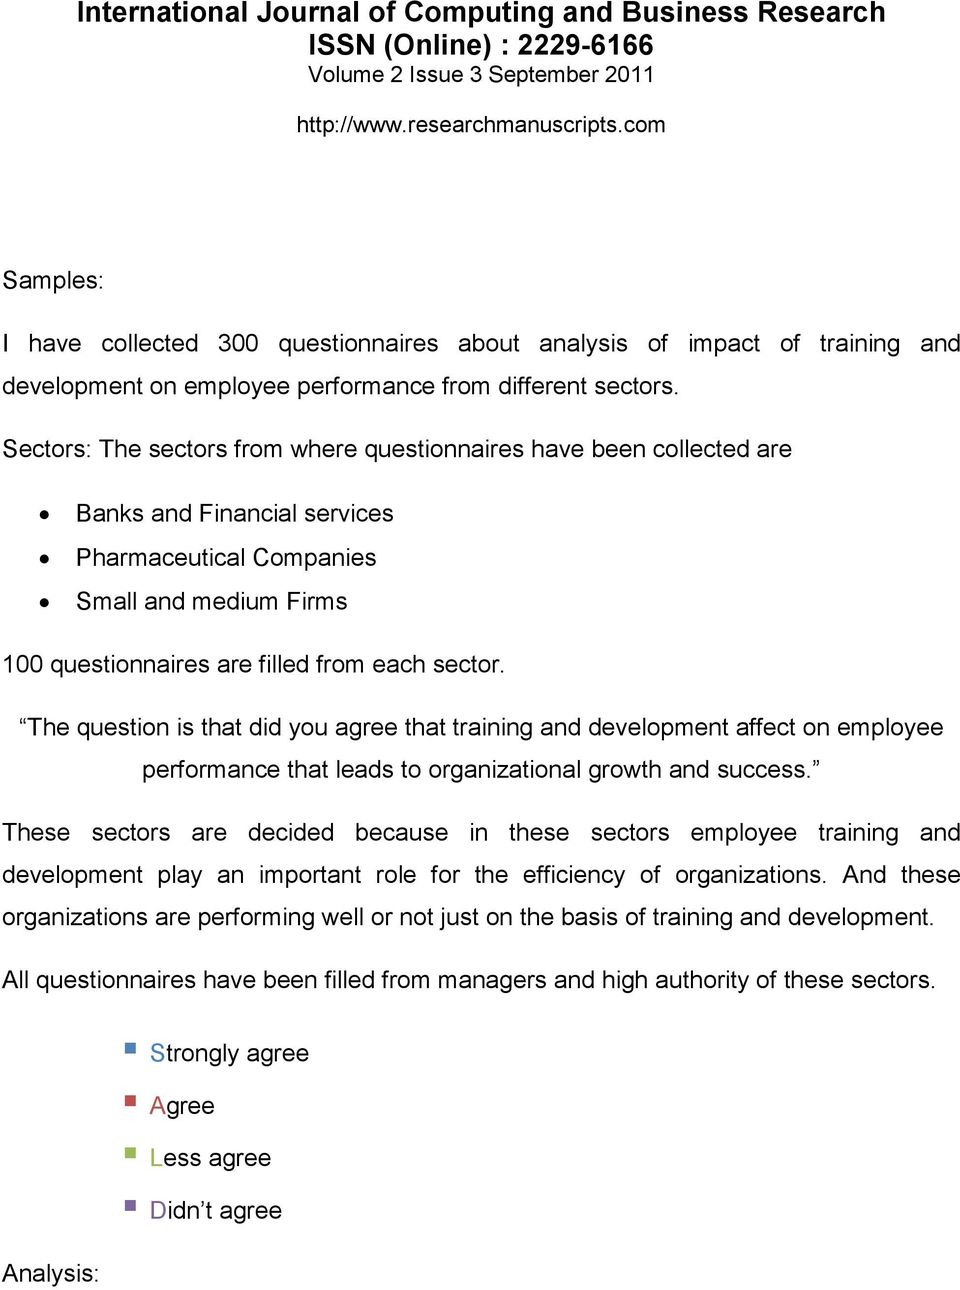 impact of training on employee performance questionnaire